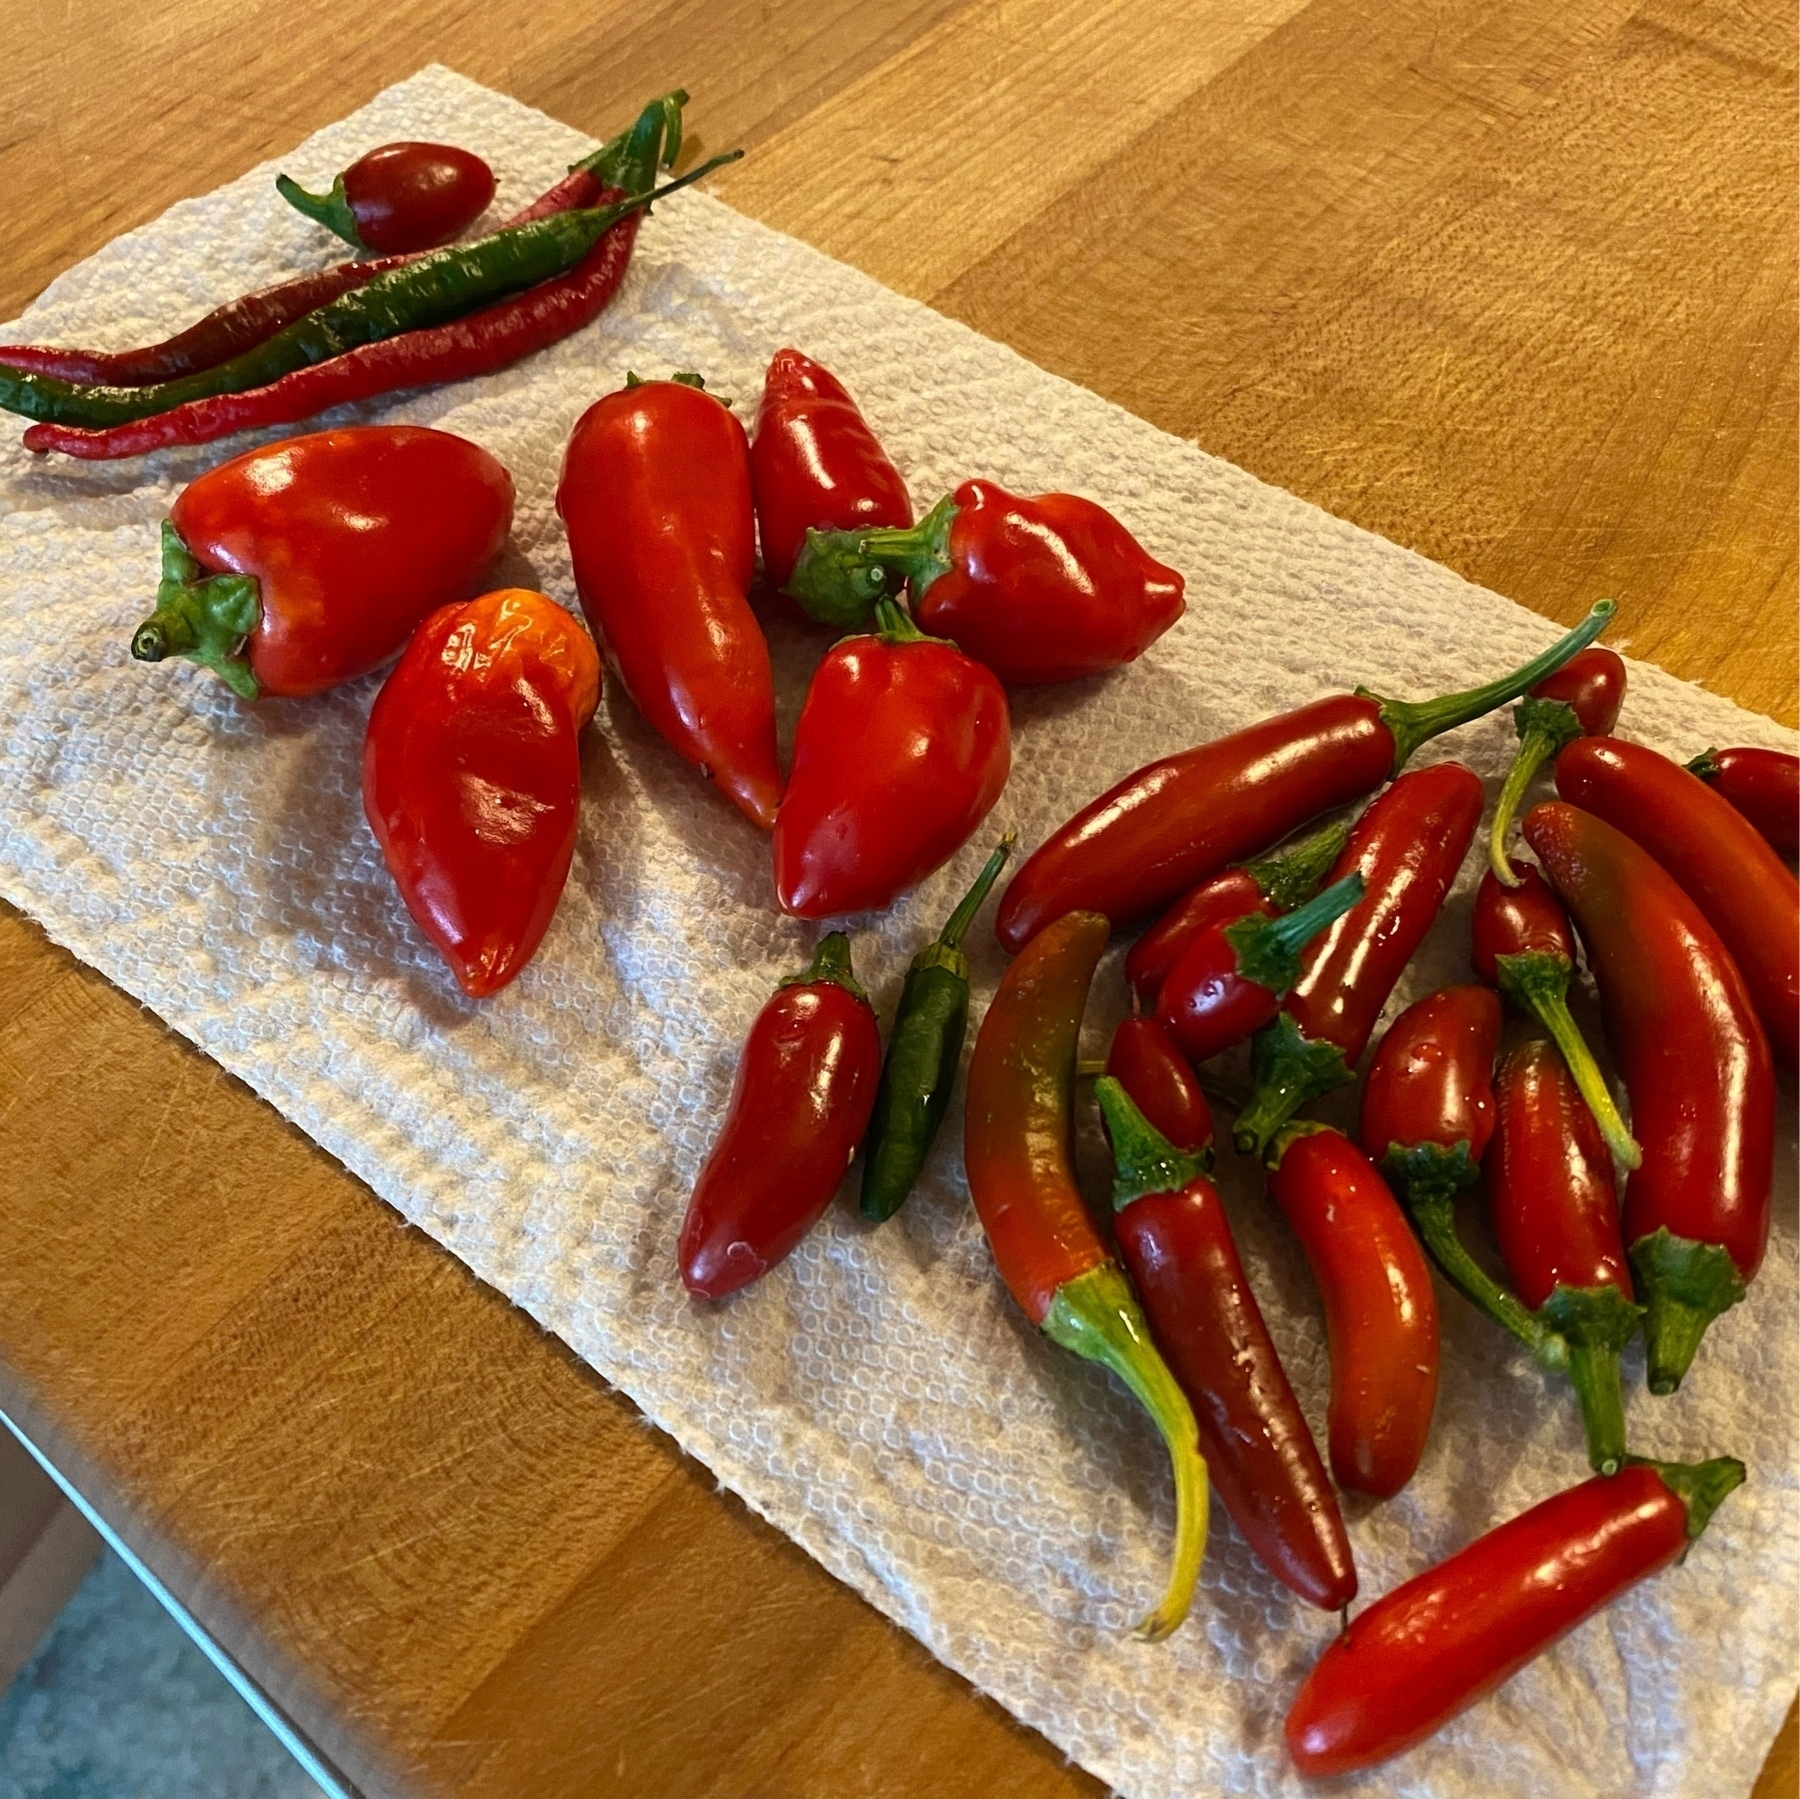 red ripe thai, santa fe, serrano, and jalepeno peppers on a cutting board